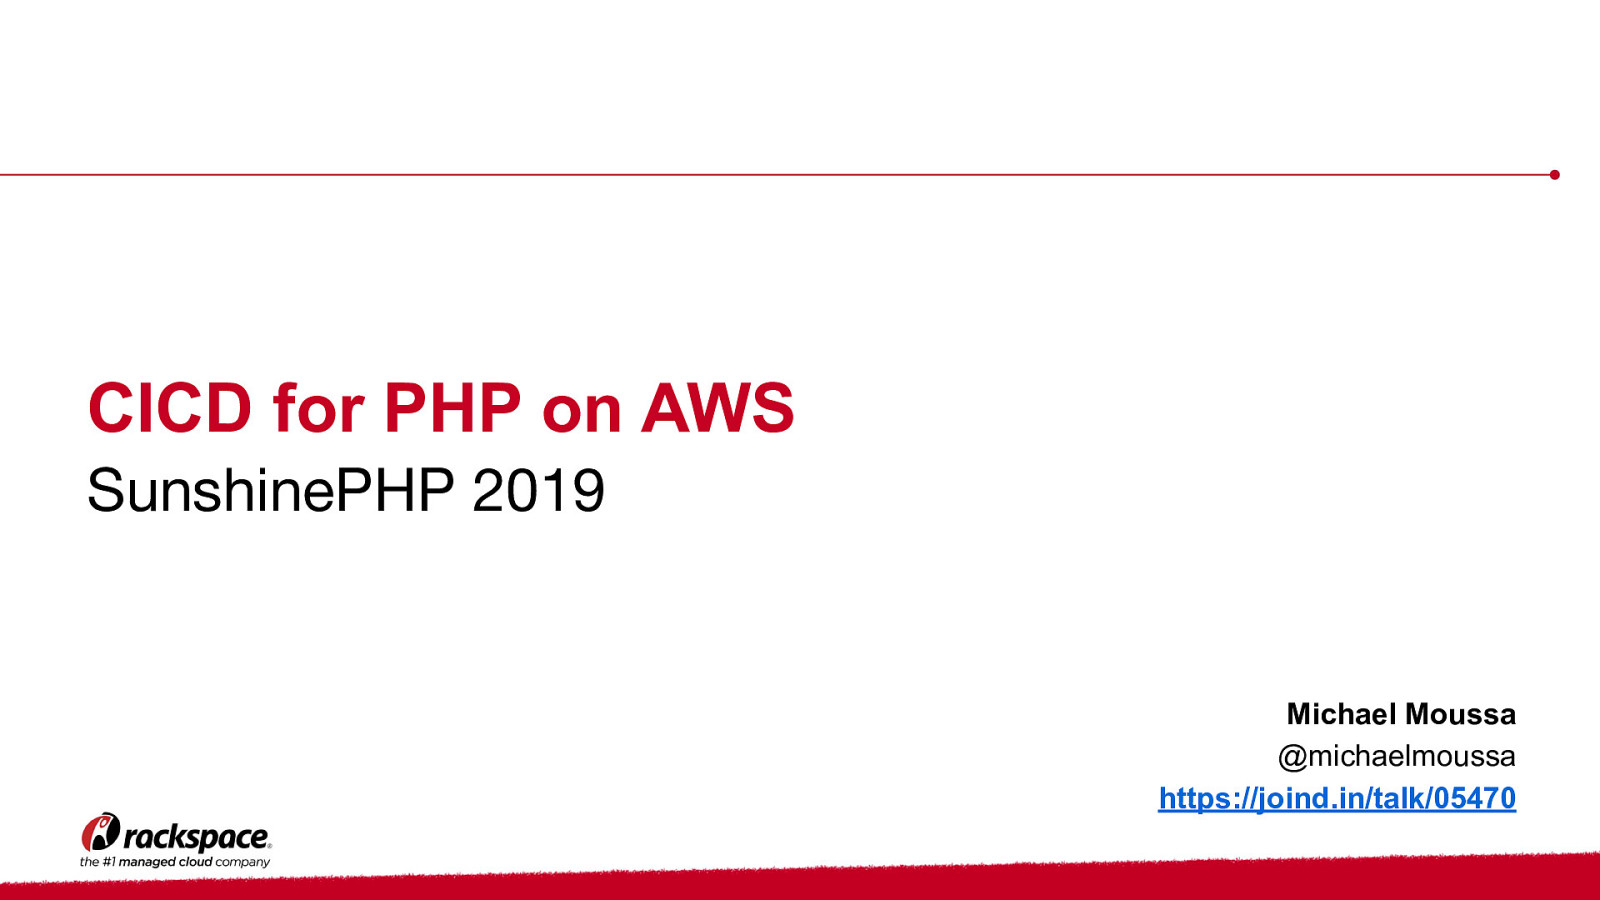 CICD for PHP on AWS by Michael Moussa